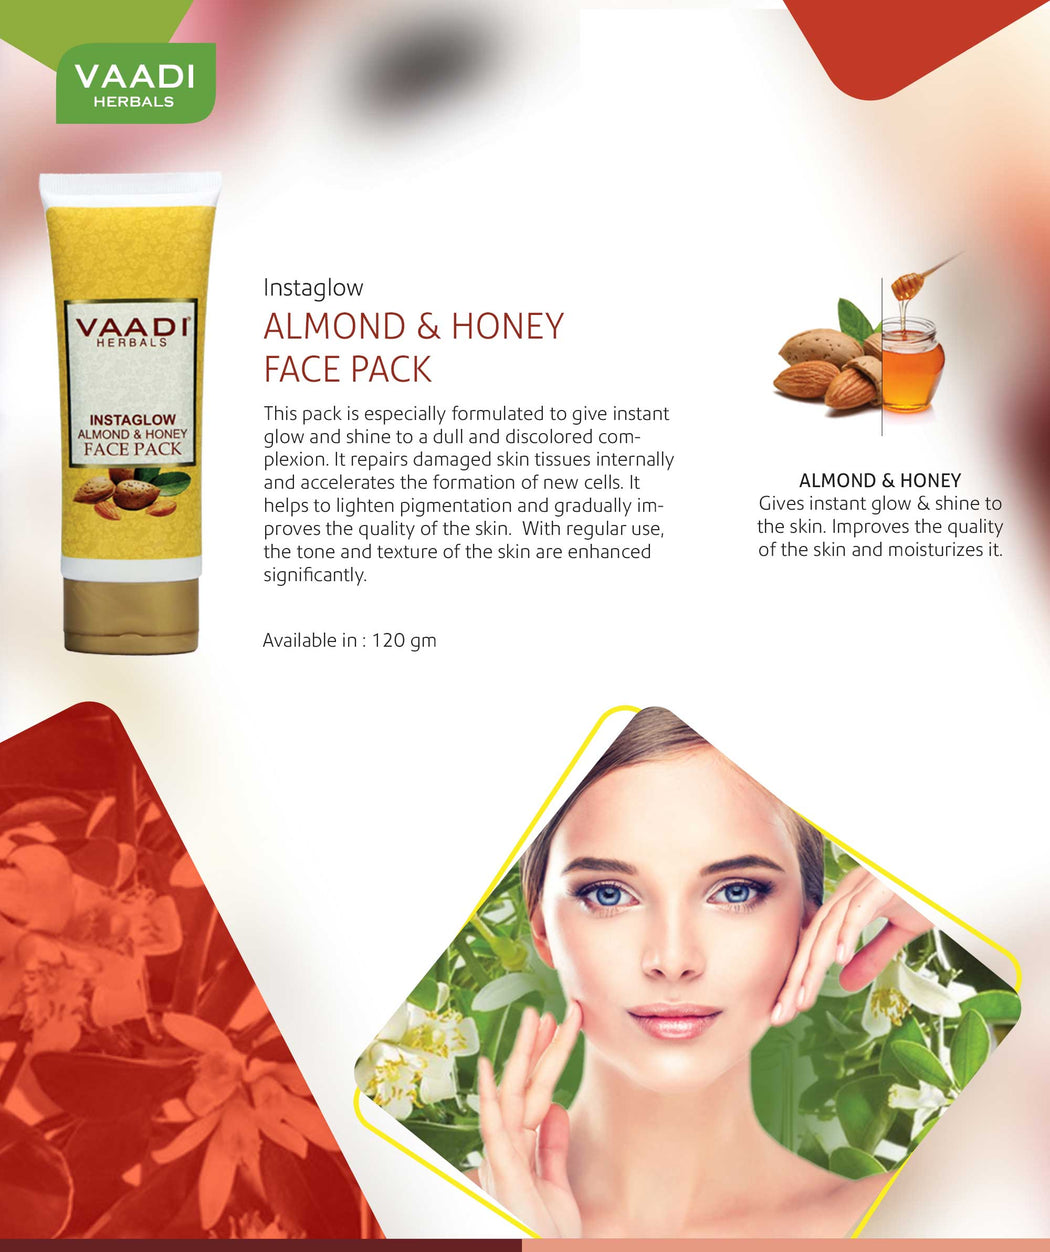 Organic InstaGlow Face Pack with Almond & Honey - Lightens Pigmentation - Gives Instant Glow (120 gms /4.3 oz)